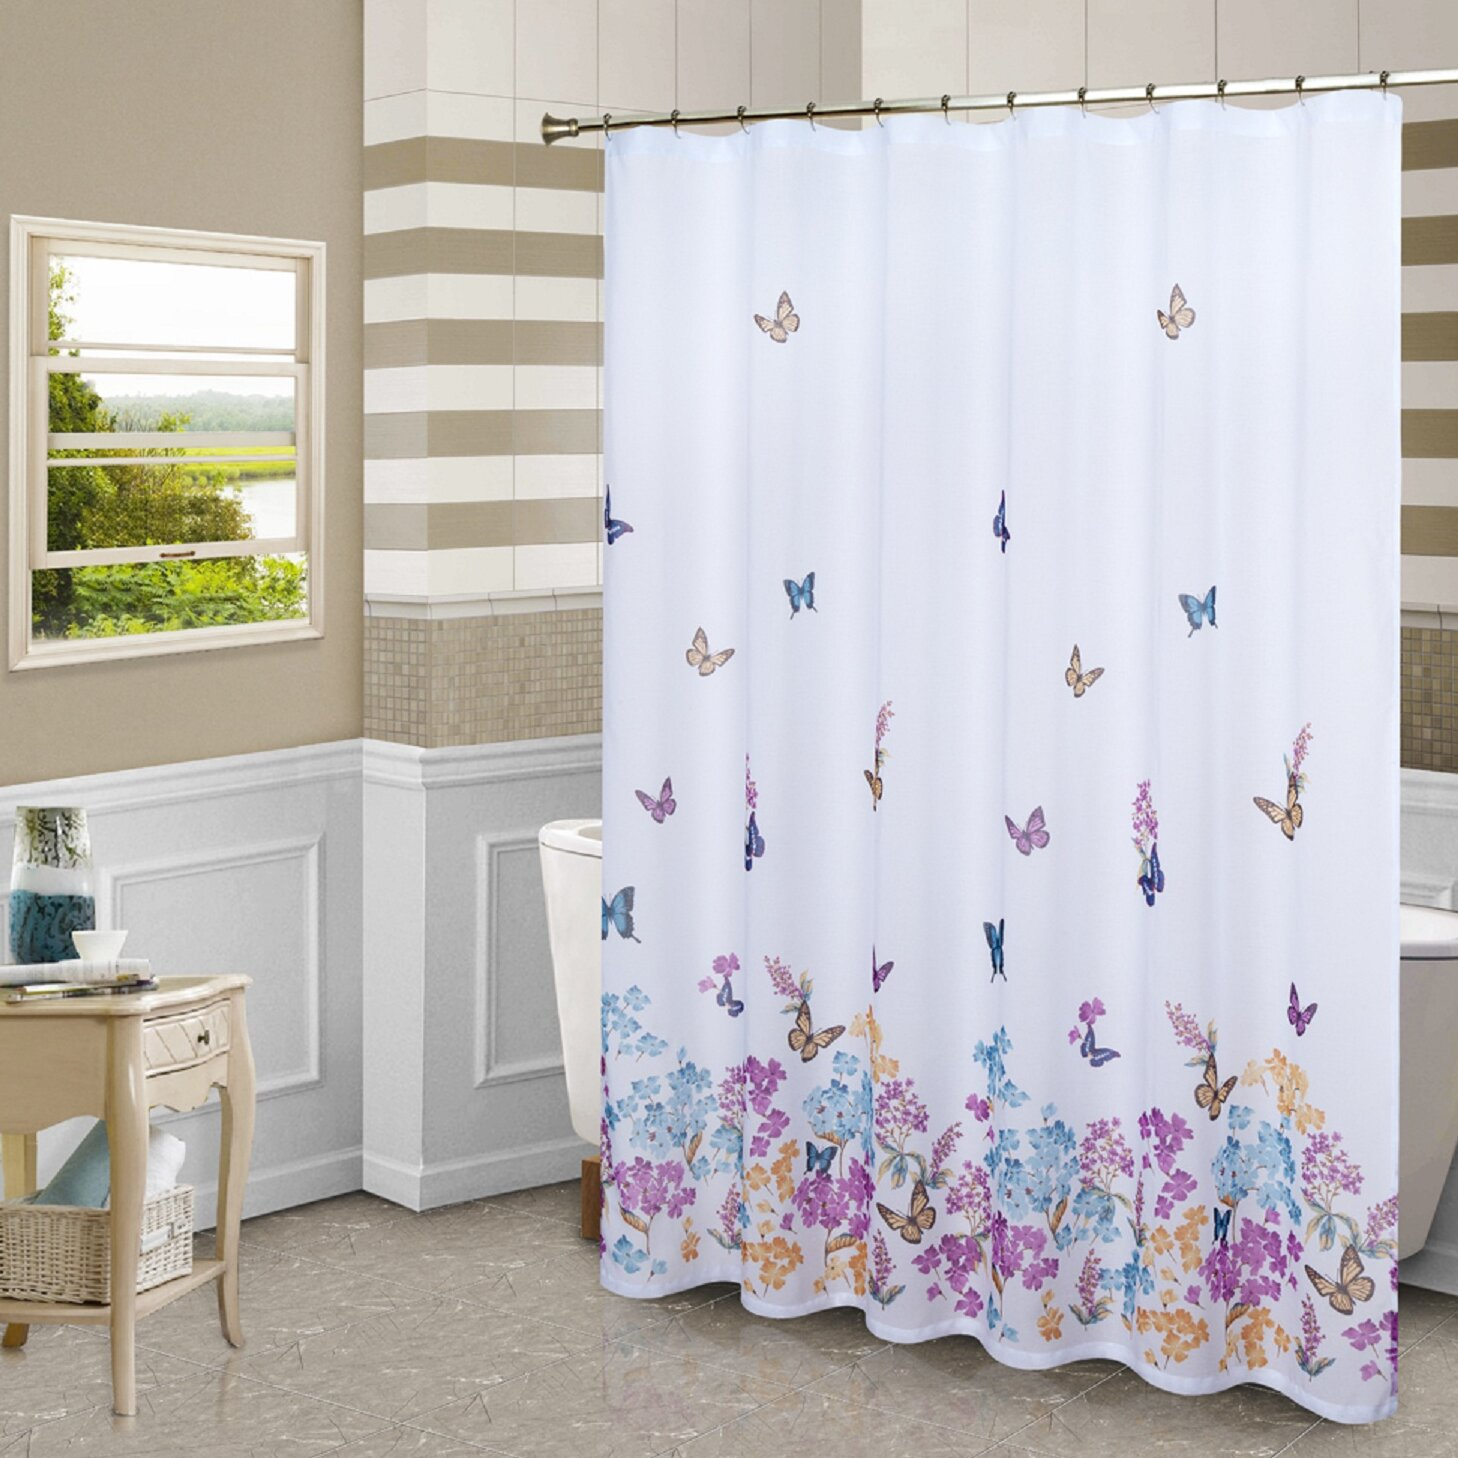 Butterfly Kitchen Curtains: United Curtain Co. Butterfly Shower Curtain & Reviews